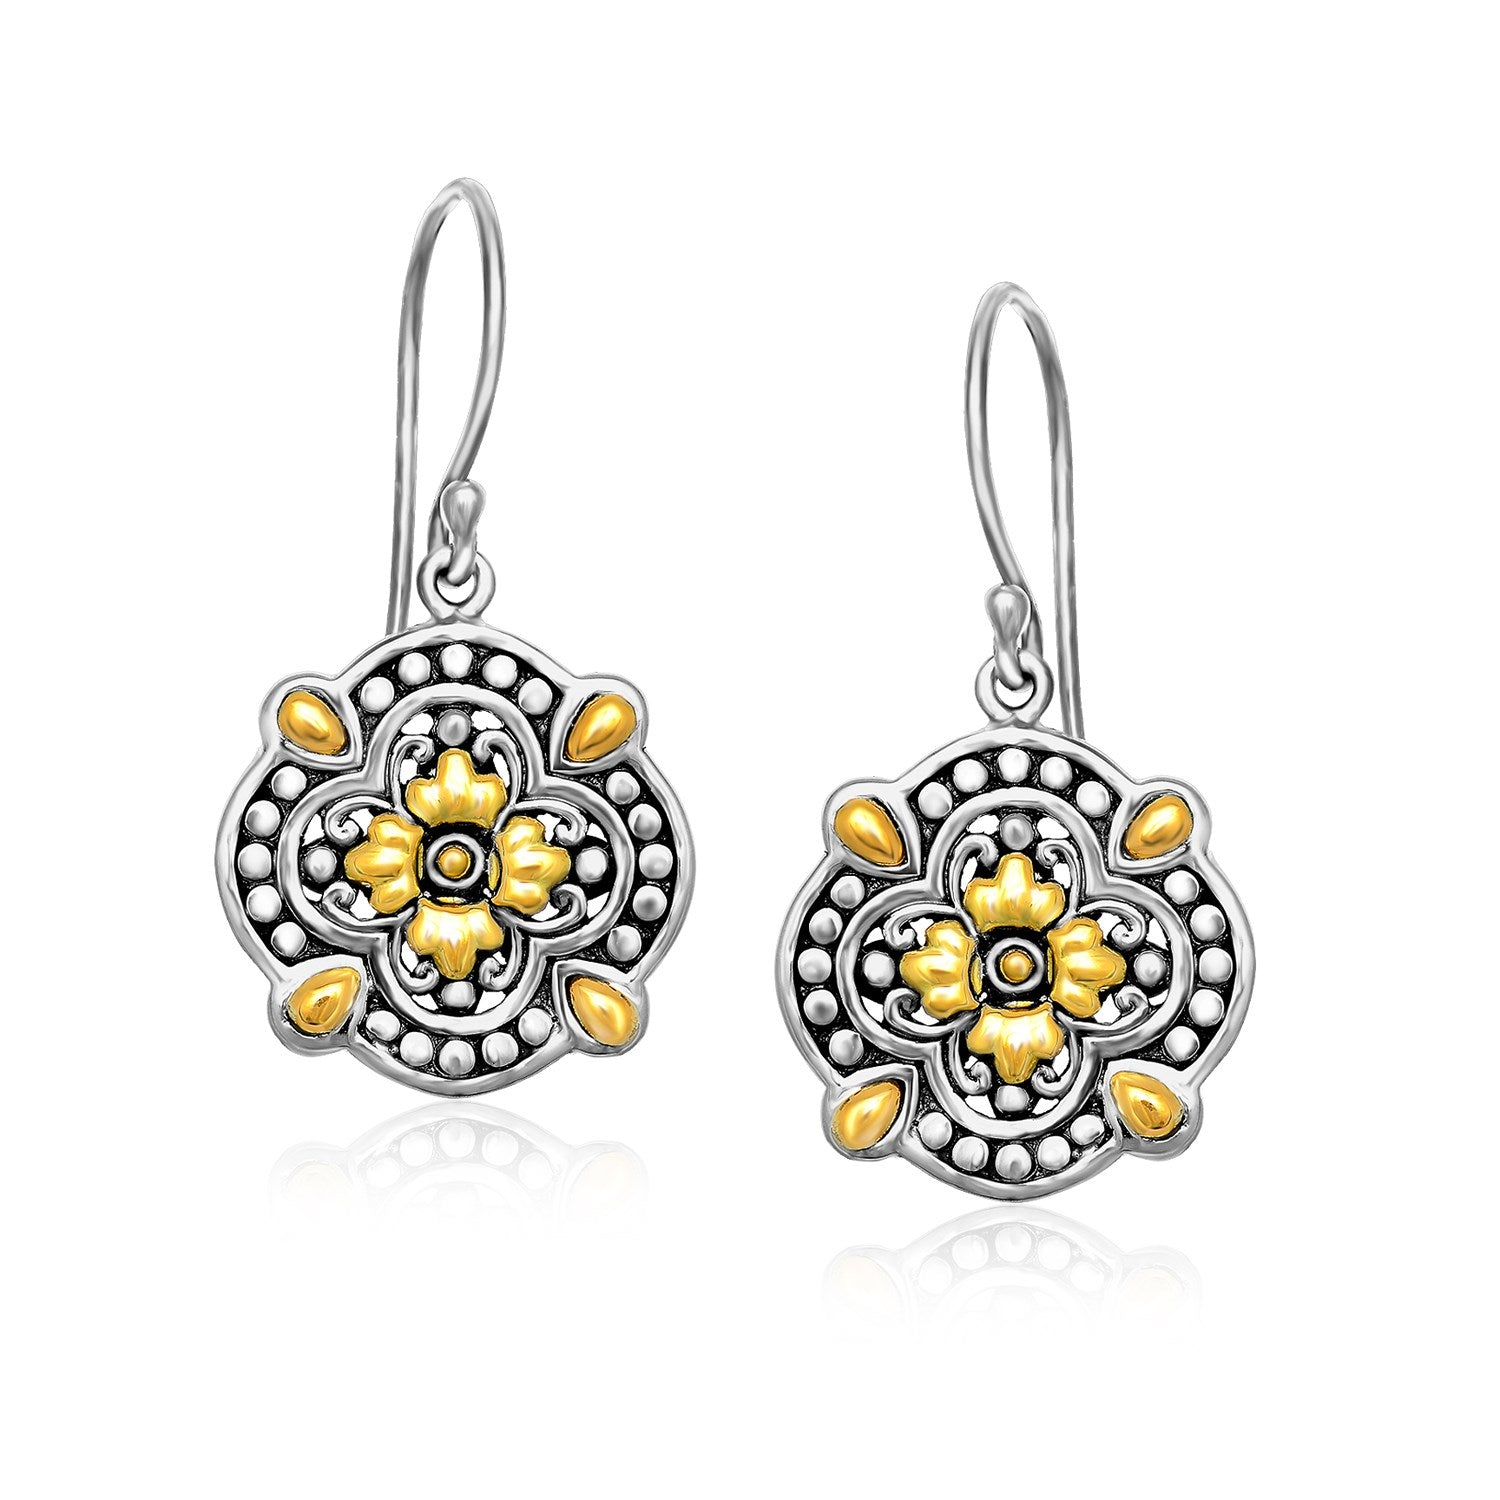 18K Yellow Gold & Sterling Silver Byzantine Pattern Flower Shape Earrings